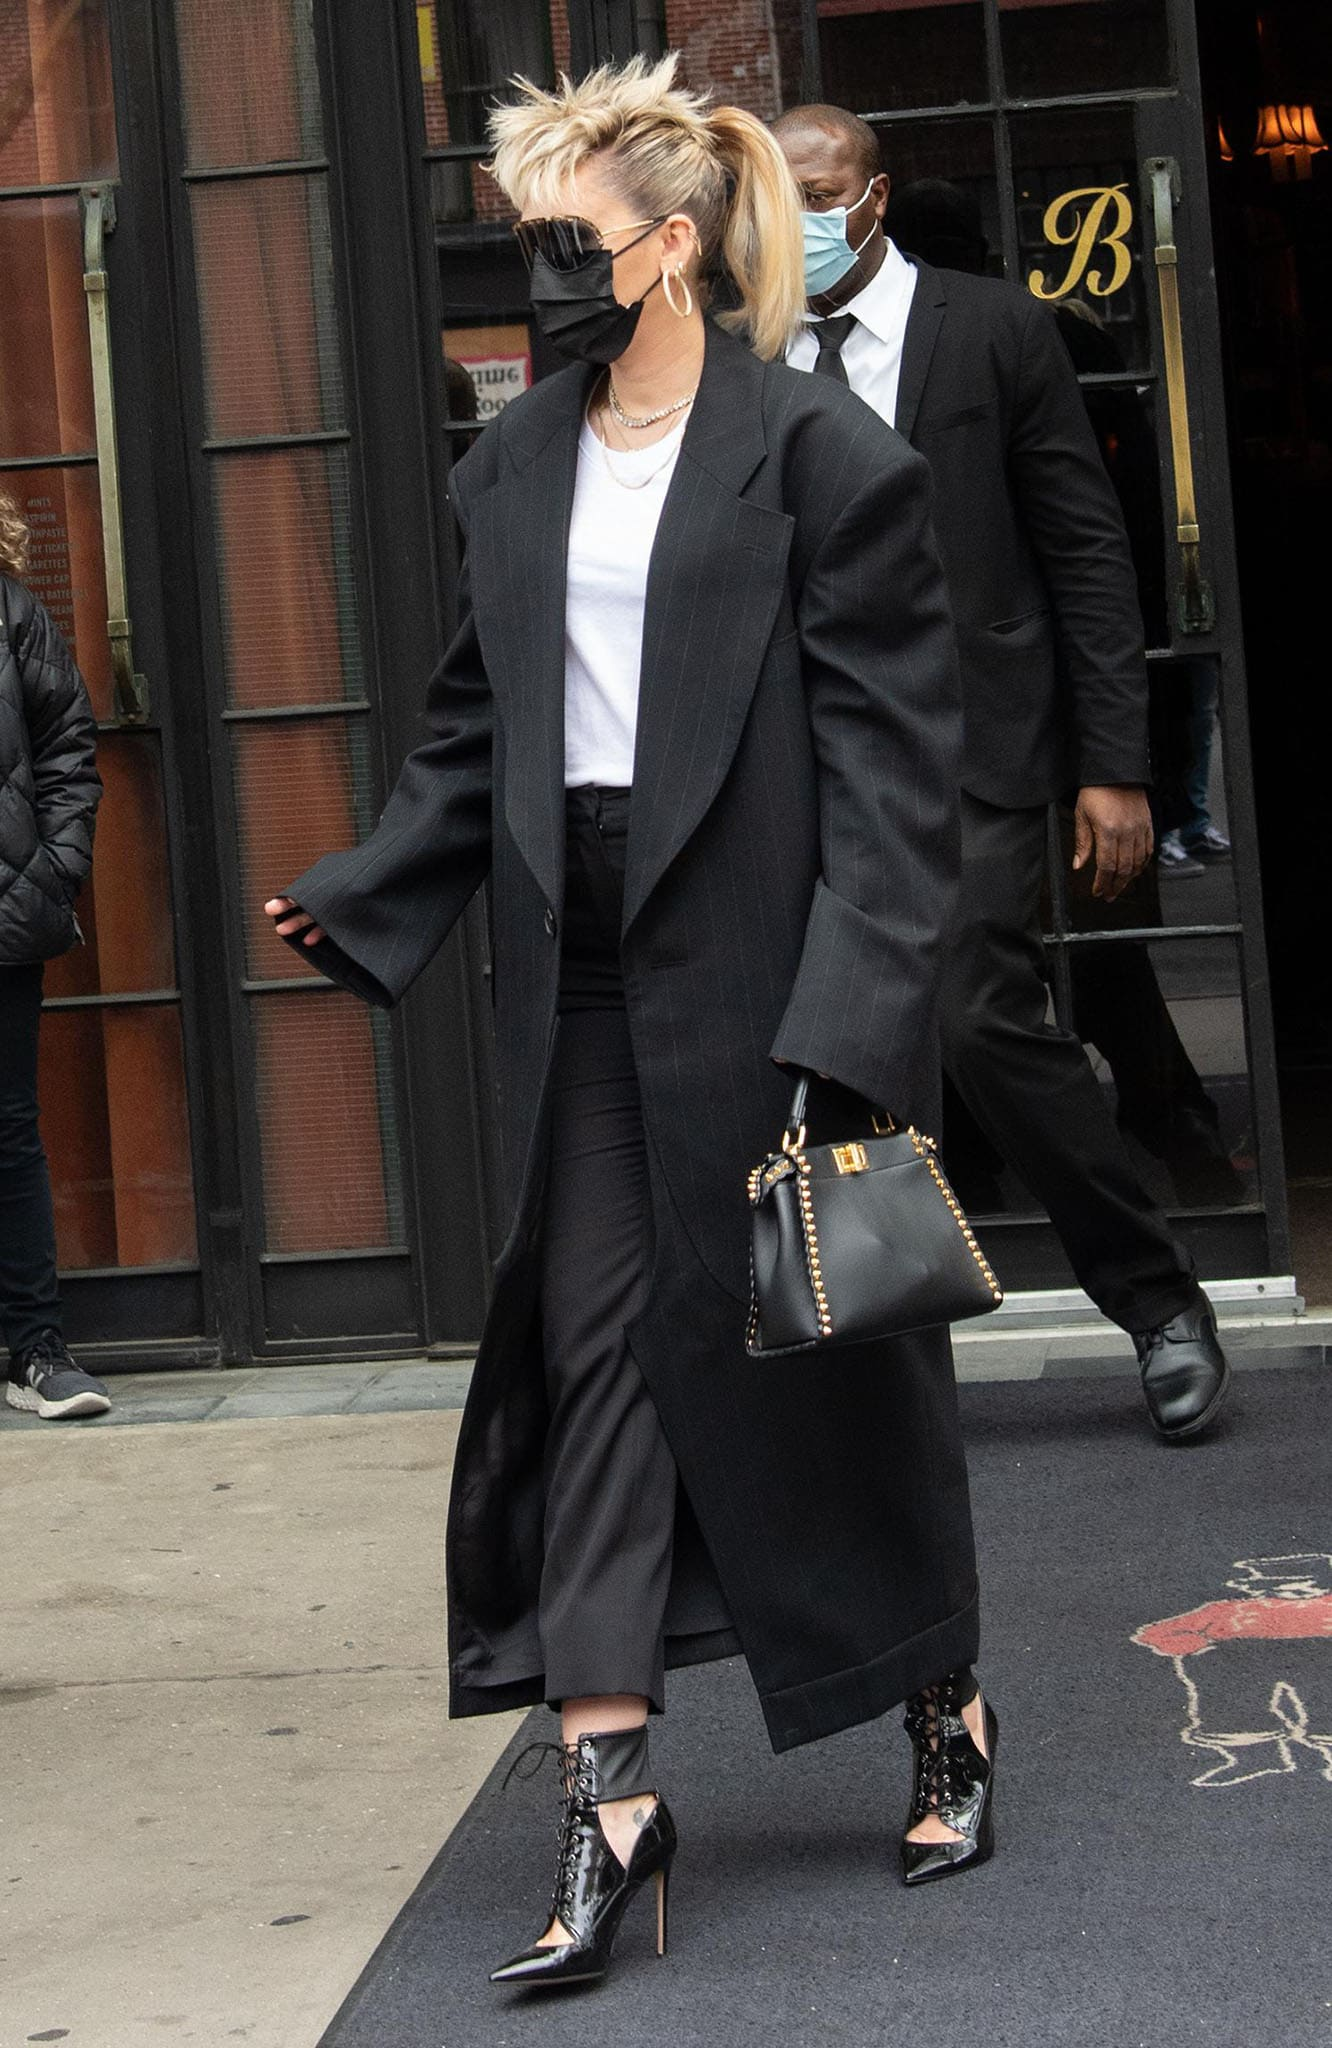 Miley Cyrus wears Junya Watanabe pinstriped long coat over a white tee and black pants combo